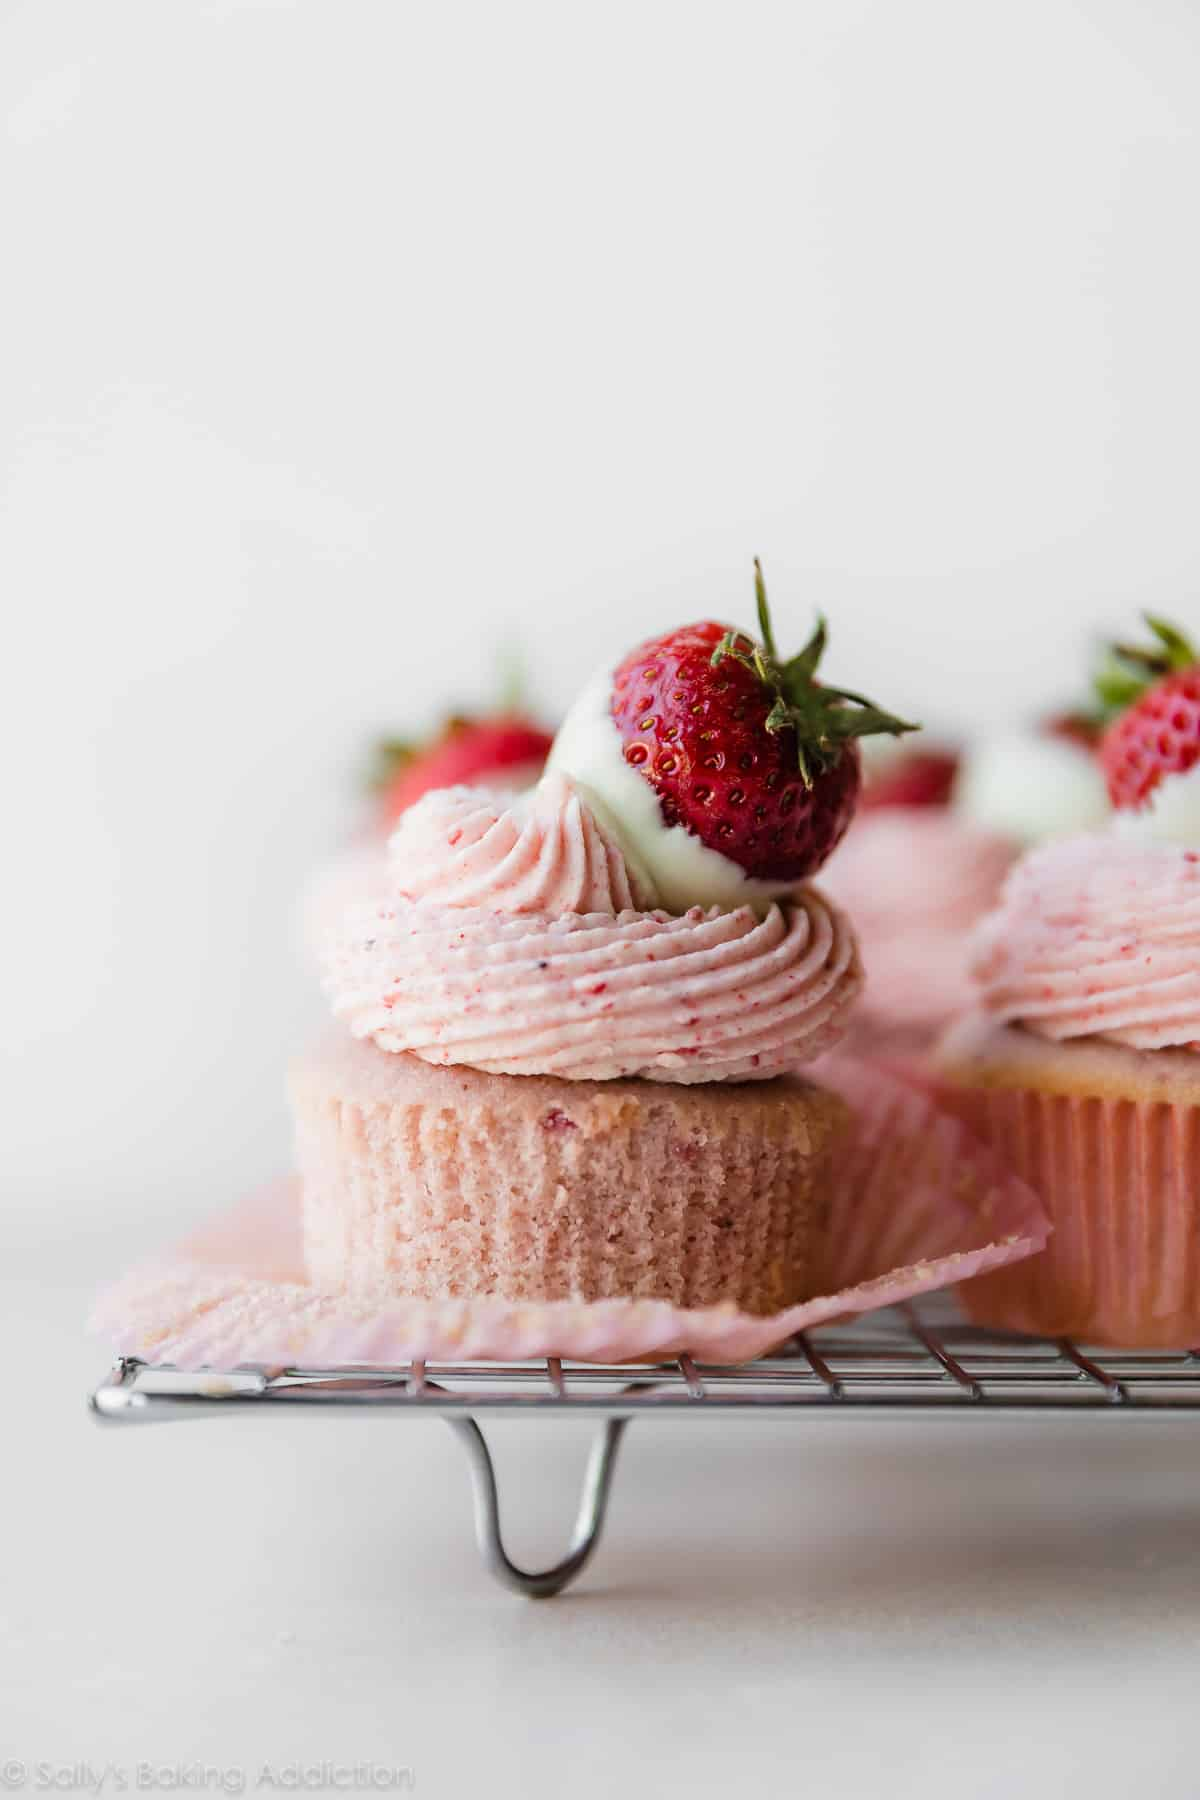 Delicious REAL STRAWBERRY cupcakes made from reduced strawberry puree. Pure strawberry, no artificial flavors. Topped with white chocolate strawberry frosting made from freeze-dried strawberries! Recipe on sallysbakingaddiction.com